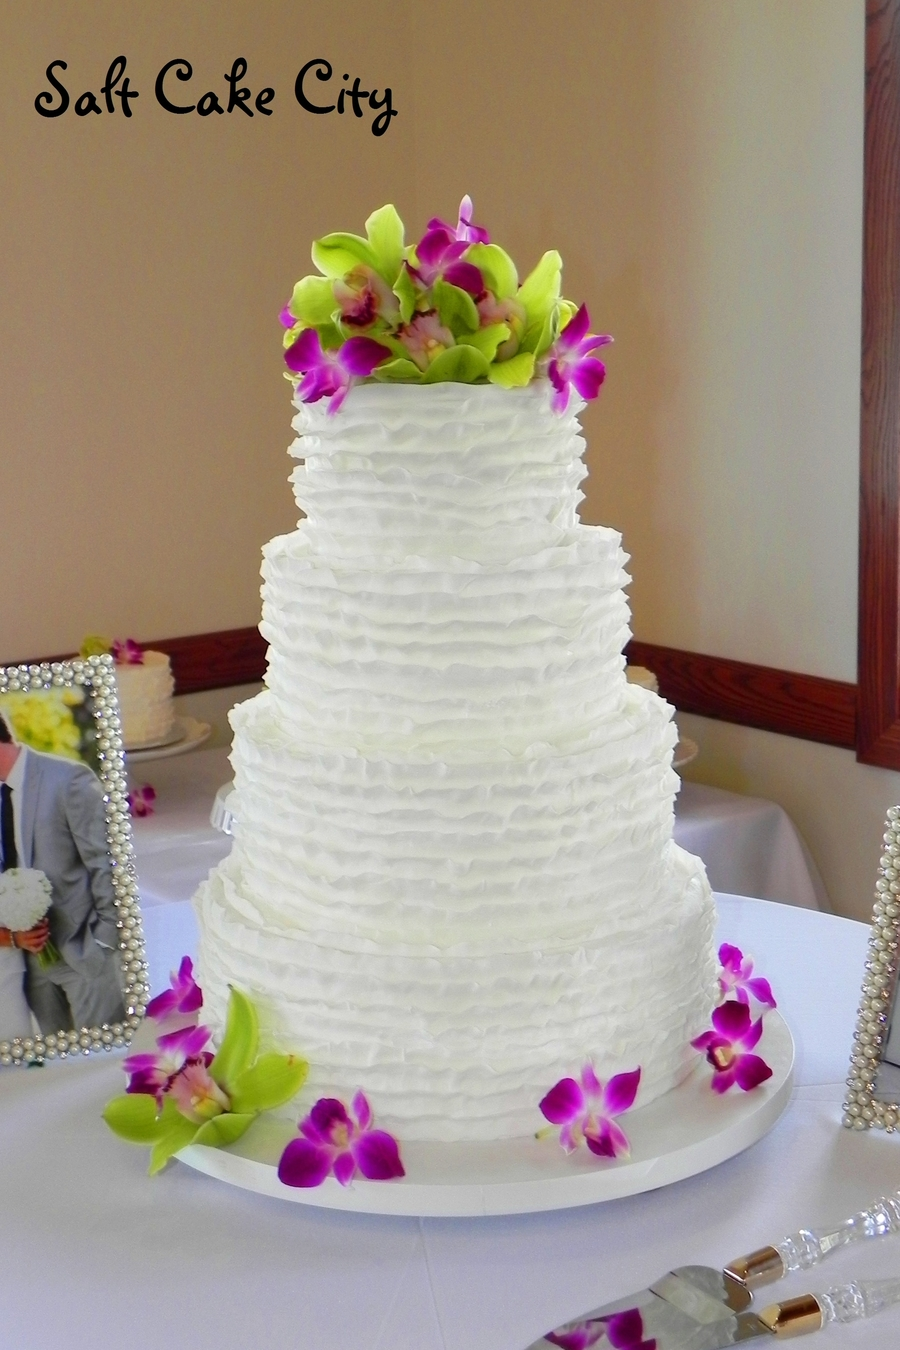 All Ruffled Wedding Cake on Cake Central